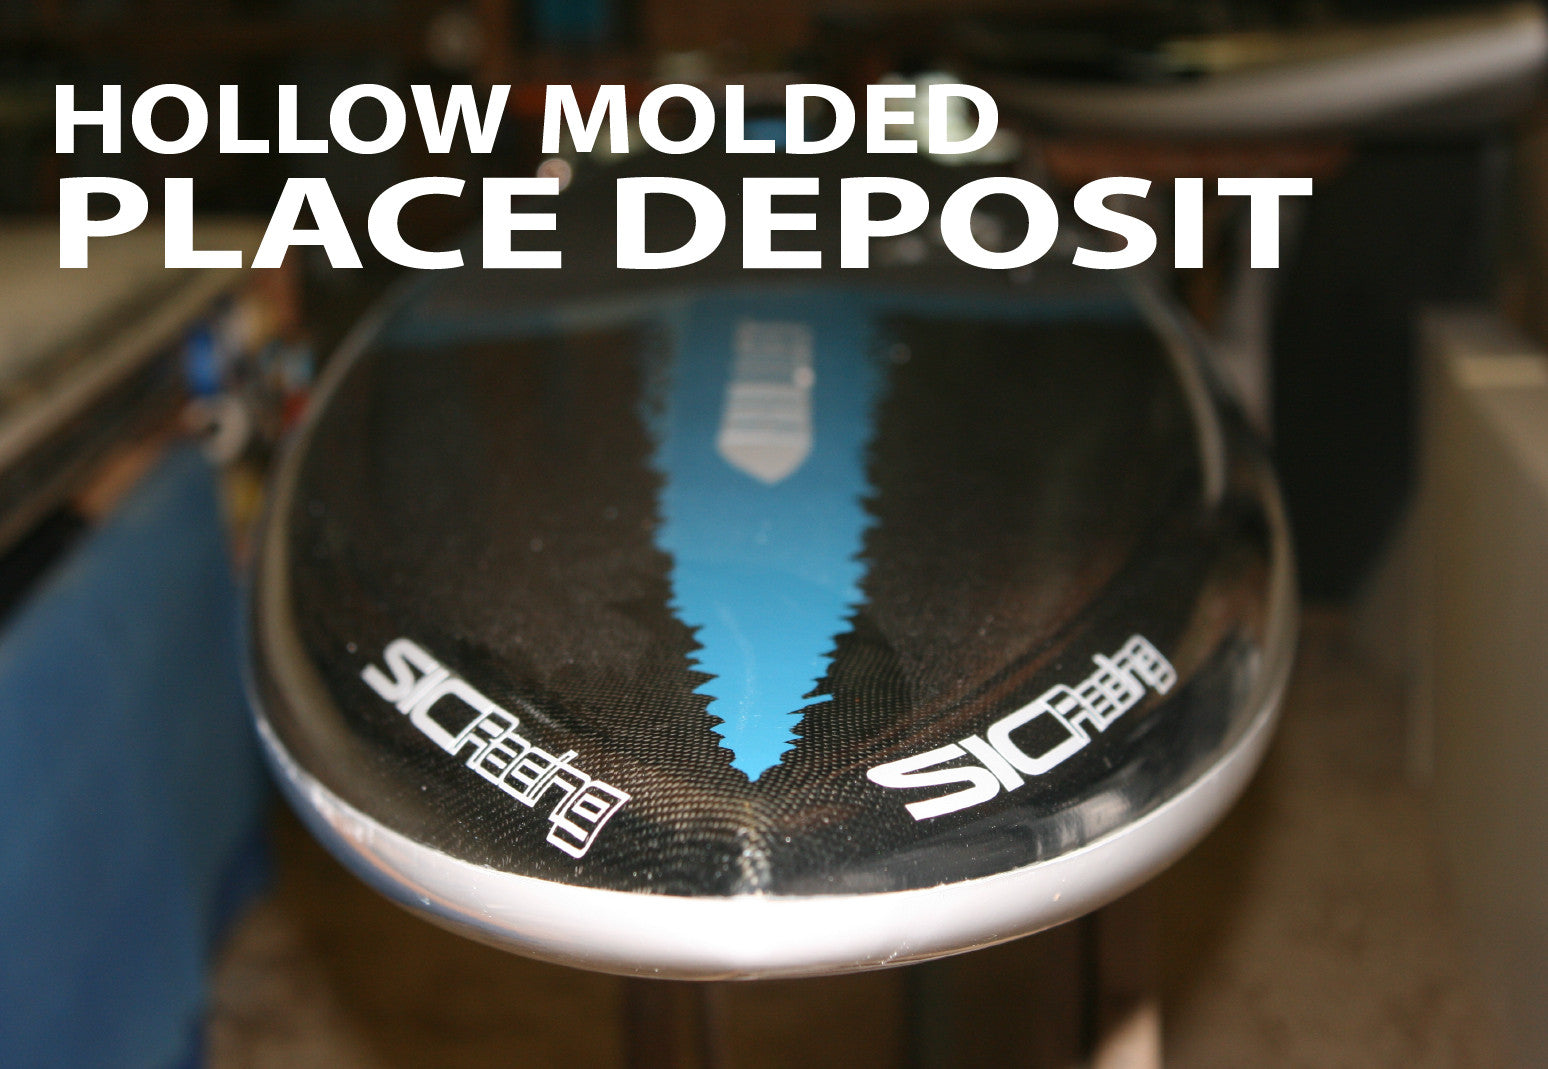 Hollow Molded Deposit